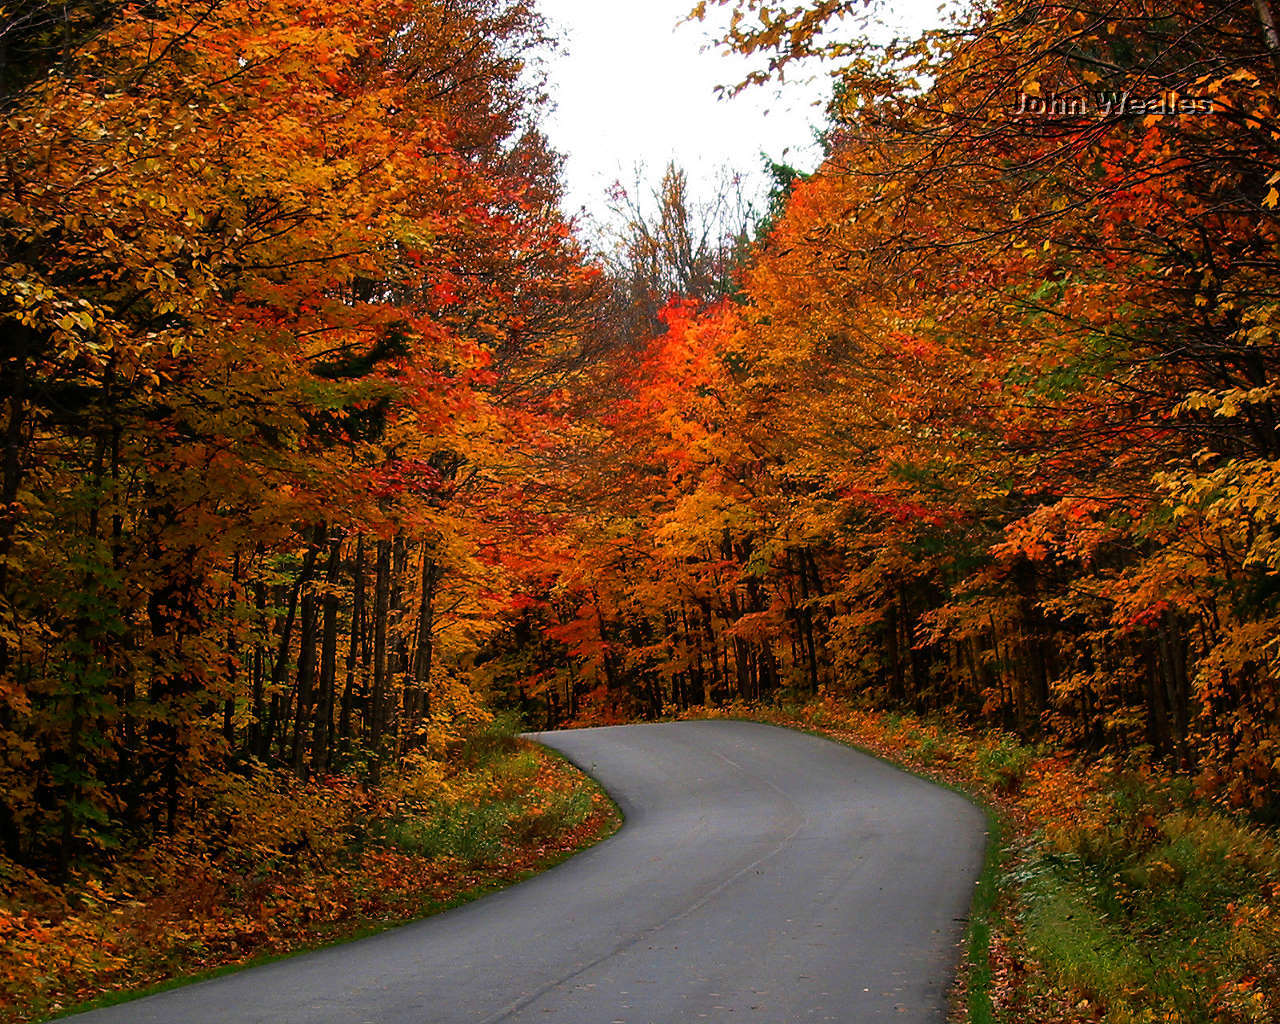 Autumn Leaves Live Wallpaper - Free downloads and reviews ...